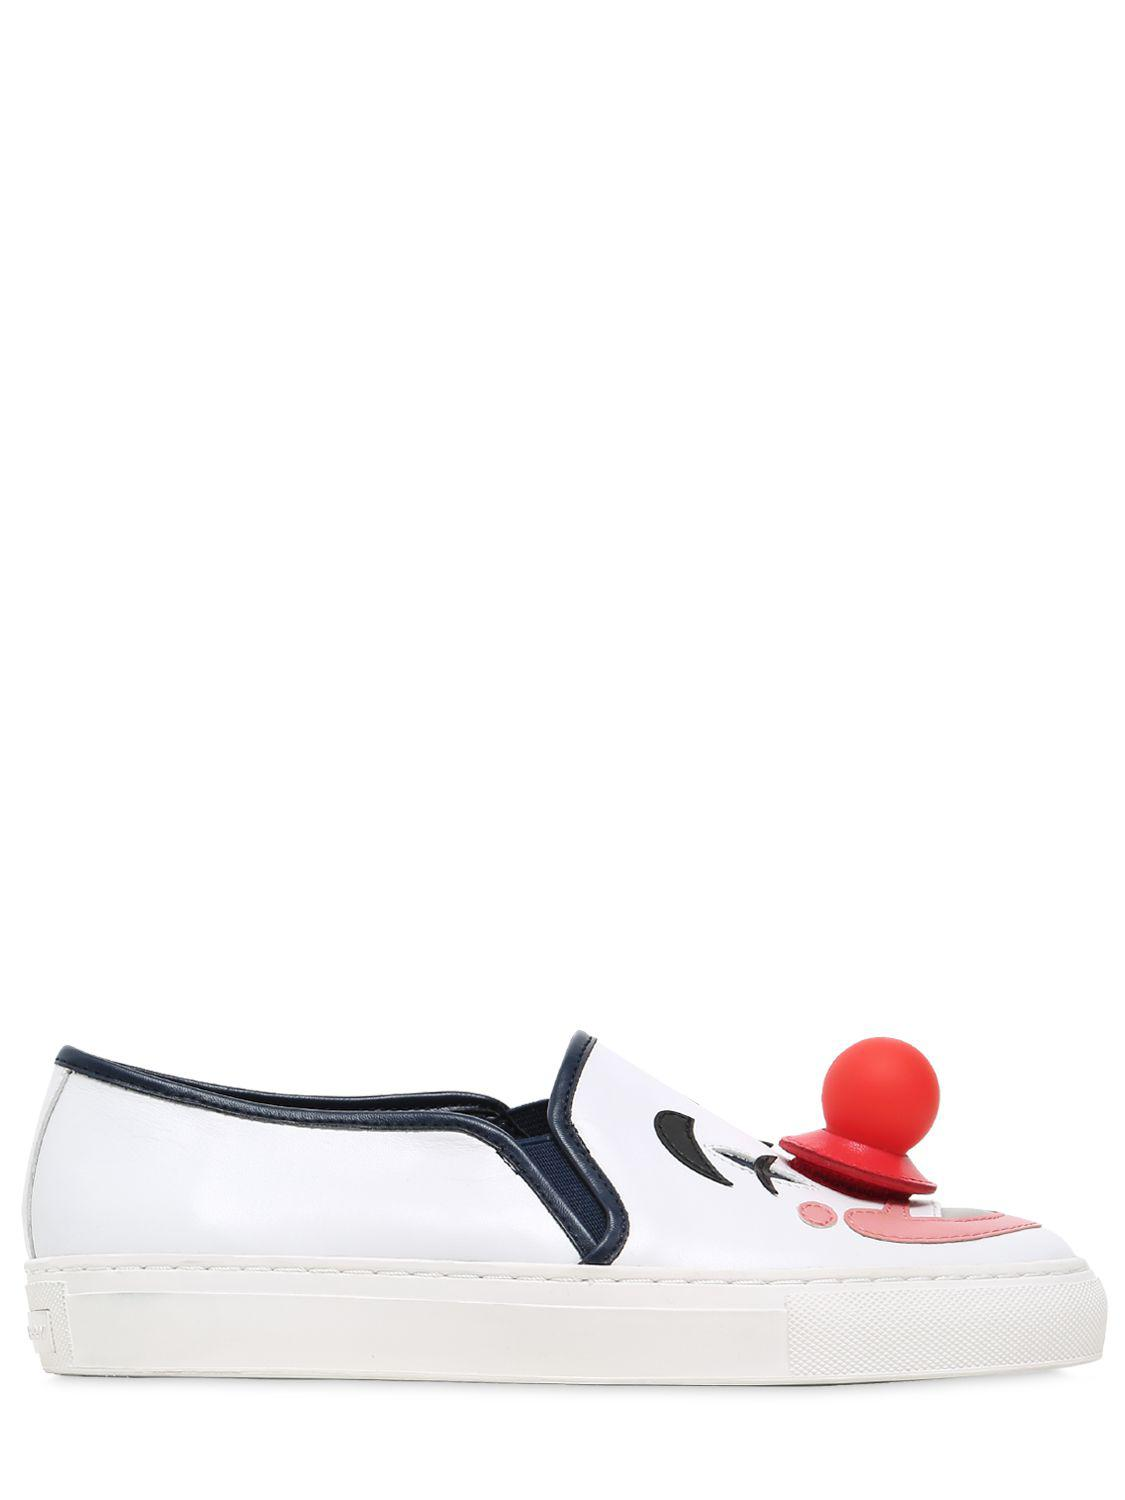 katy perry 20mm lucille clown leather sneakers lyst